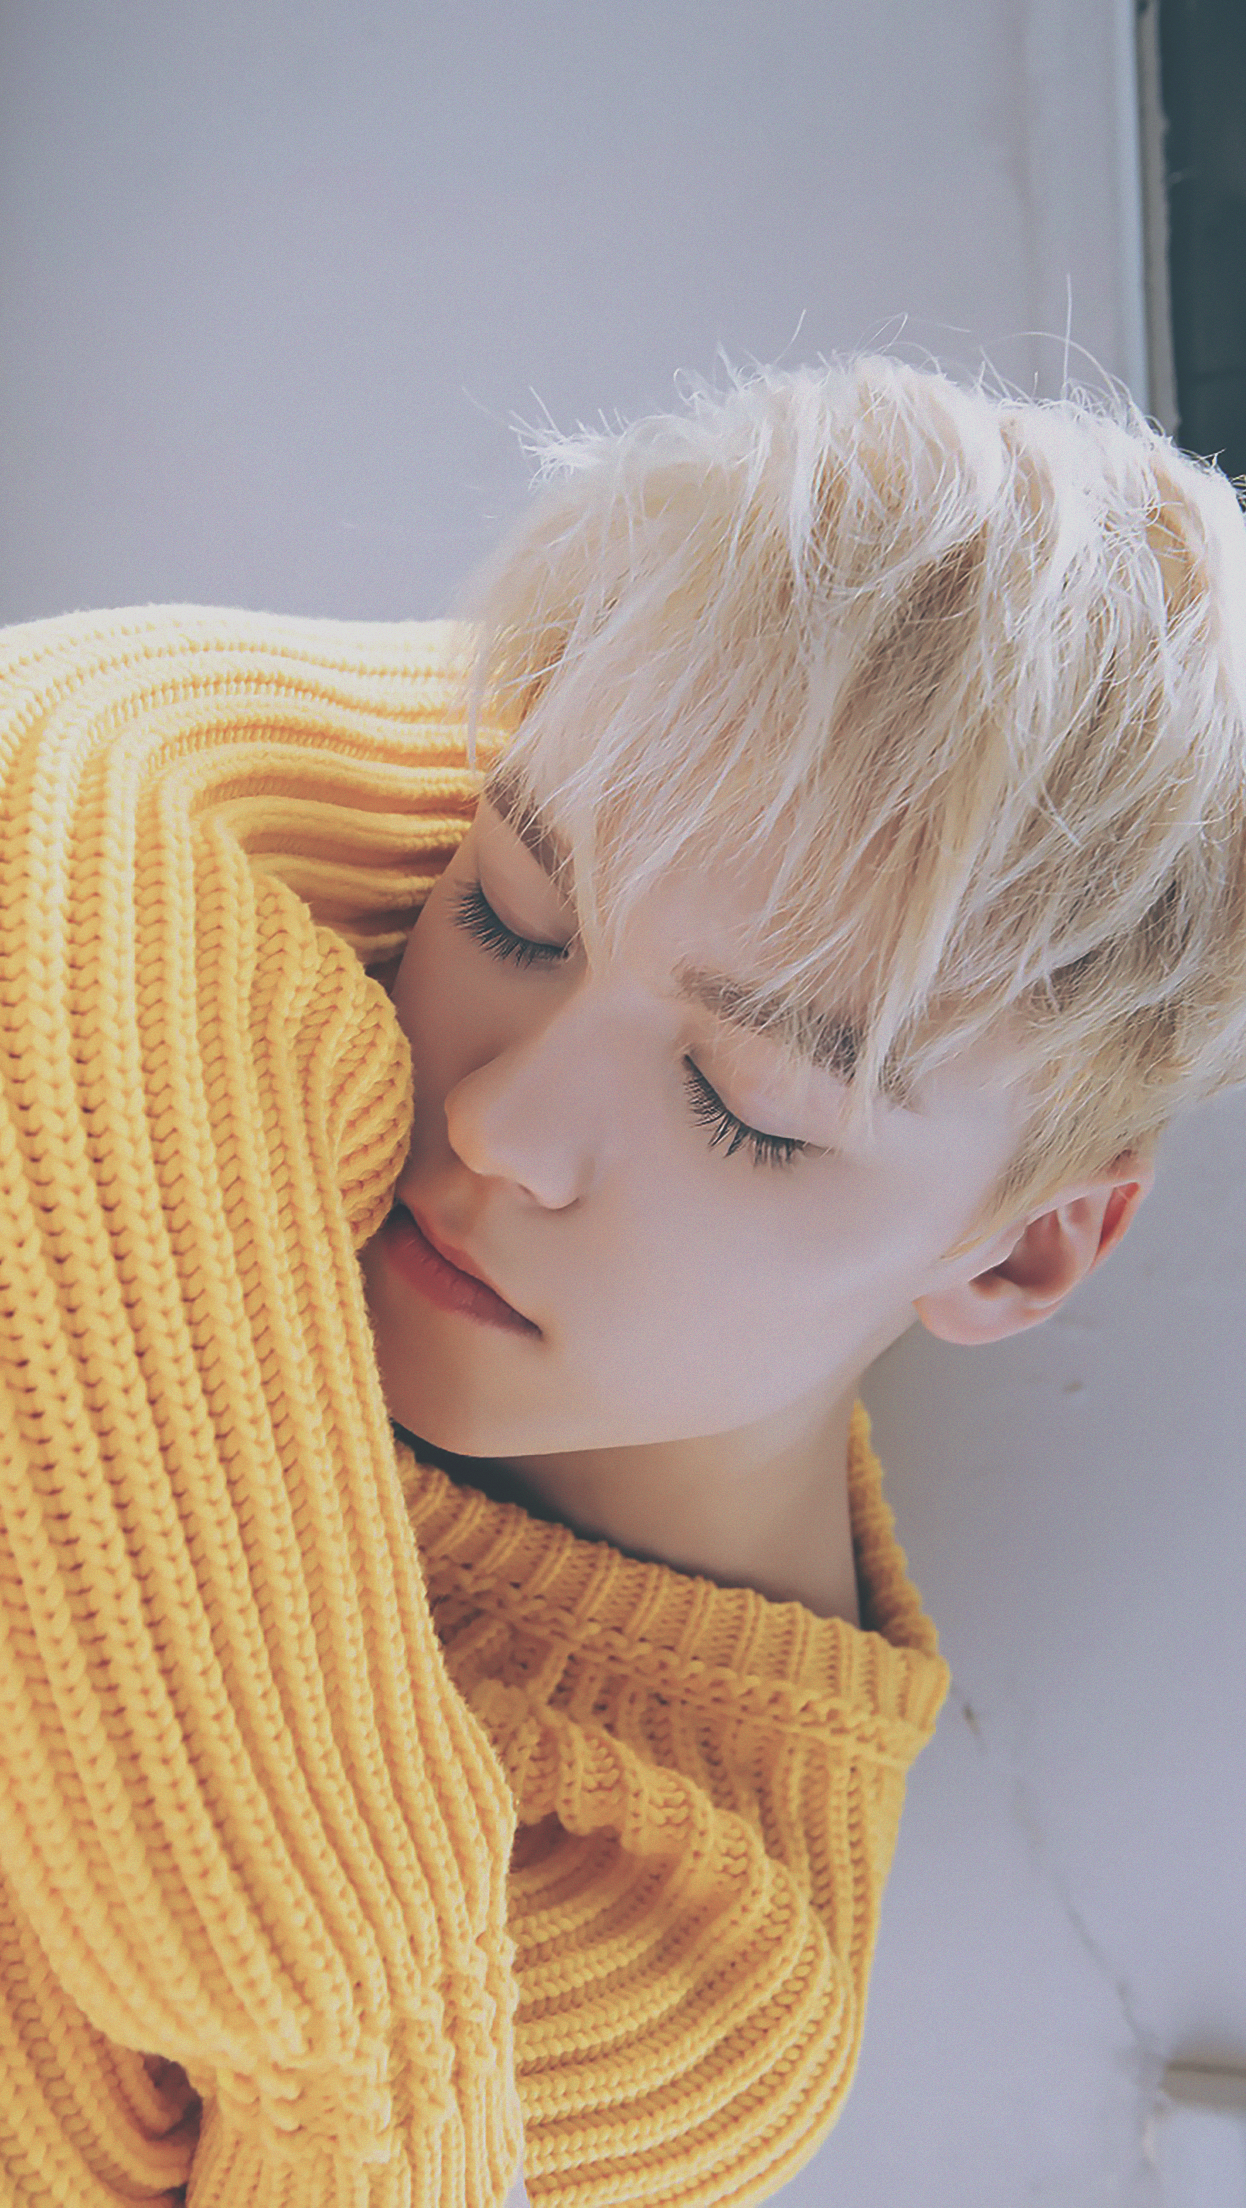 The aesthetic for this picture of Vernon is incredible.